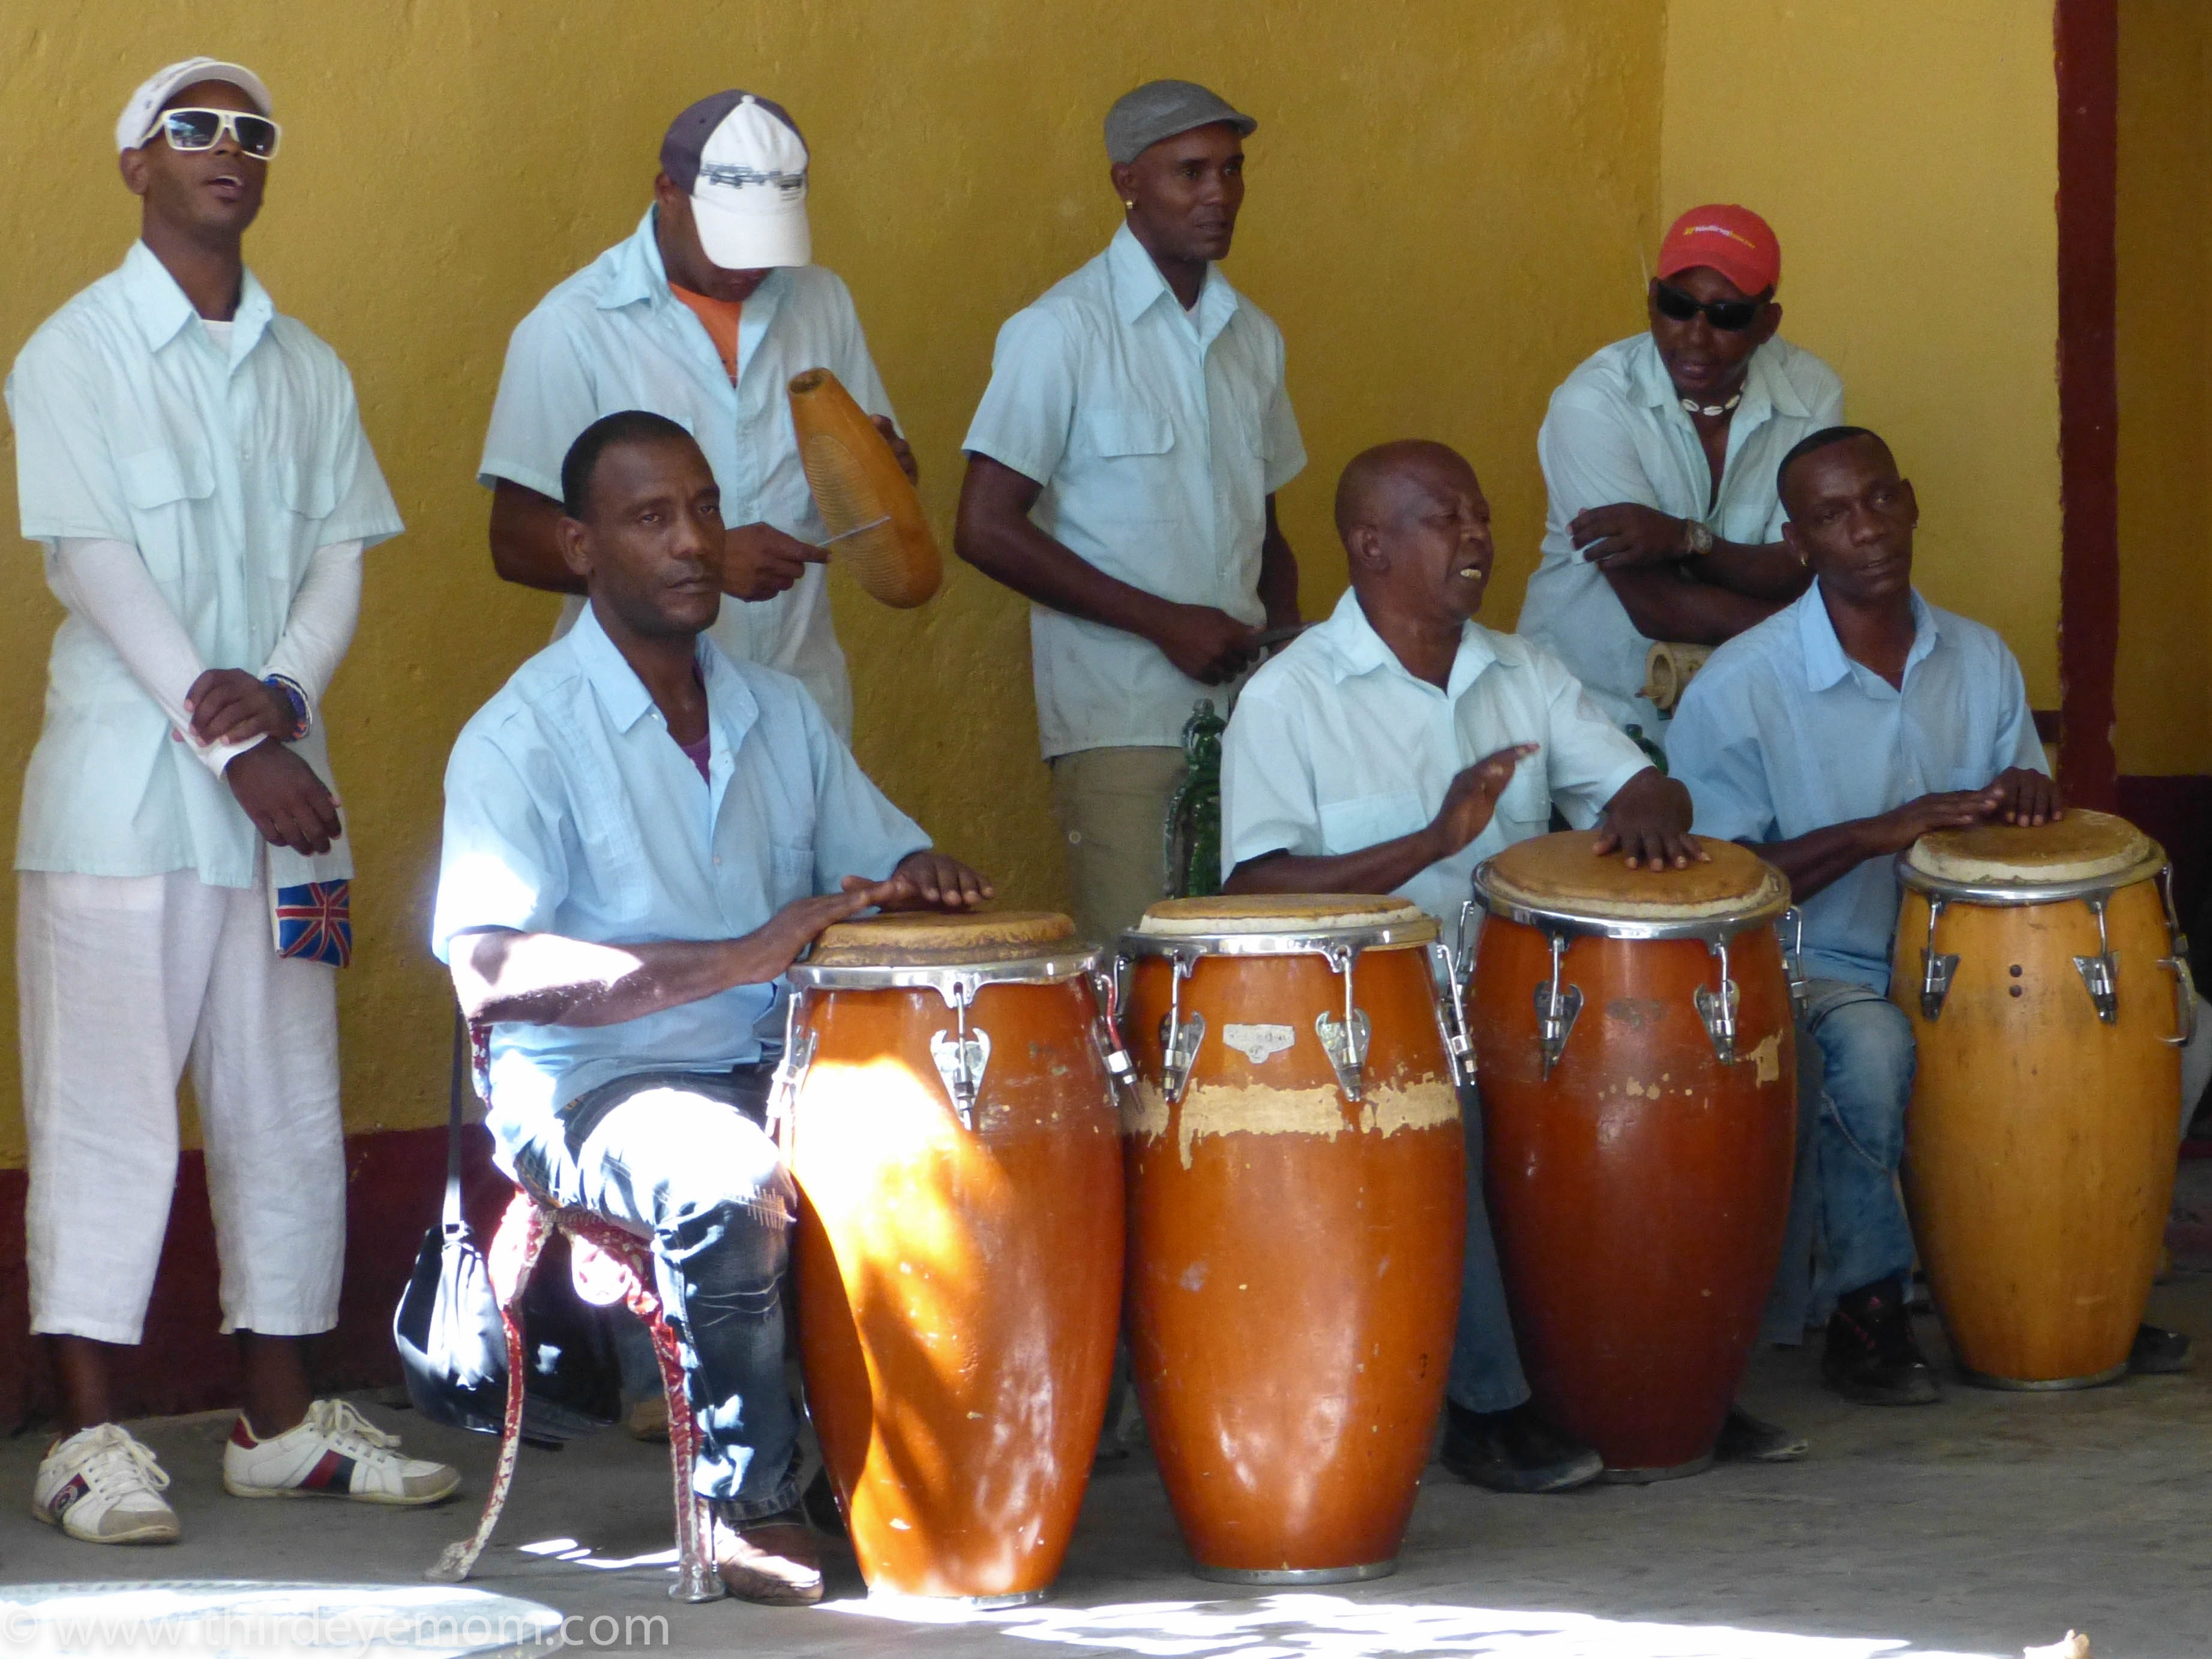 an analysis of africa and cuban music Gleijeses presented a solid analysis on what motivated the in sub-saharan africa, cuban revolutionaries were cuba's decisive role in african liberation.